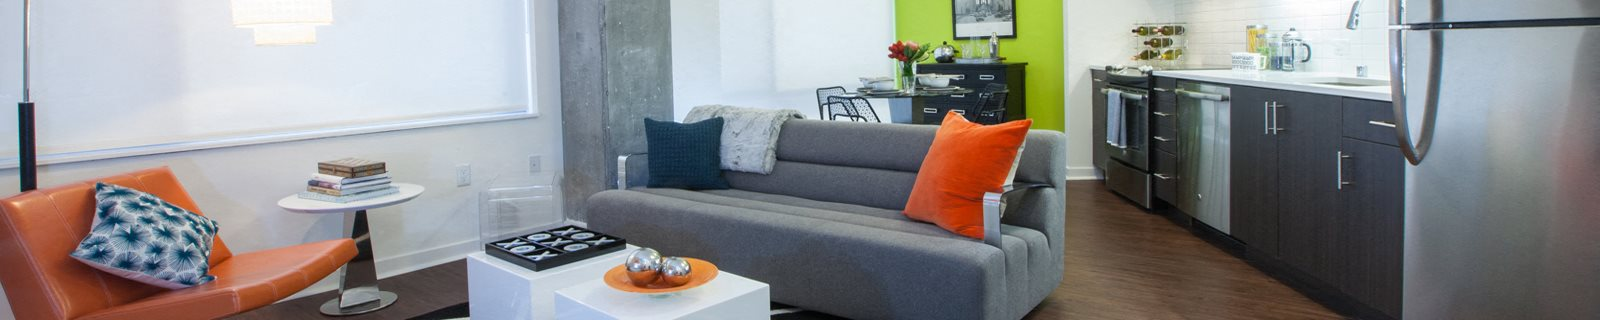 living room banner image for apartments in sf